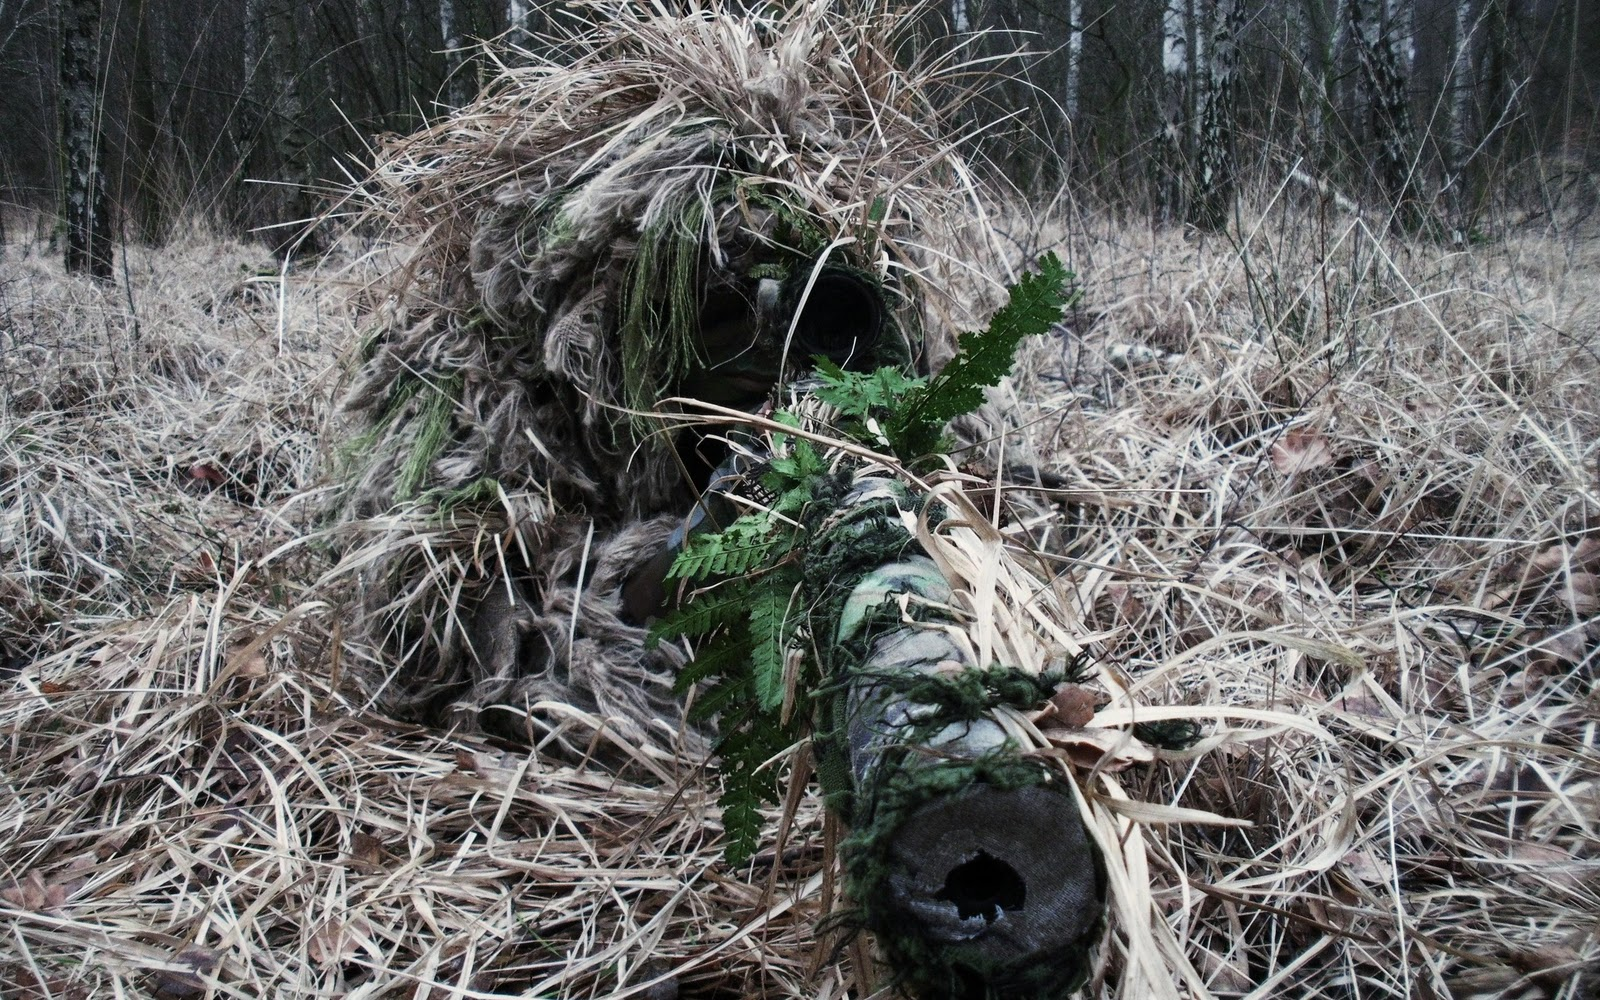 Sniper Wallpaper Camouflage Grass Hd Desktop Wallpapers